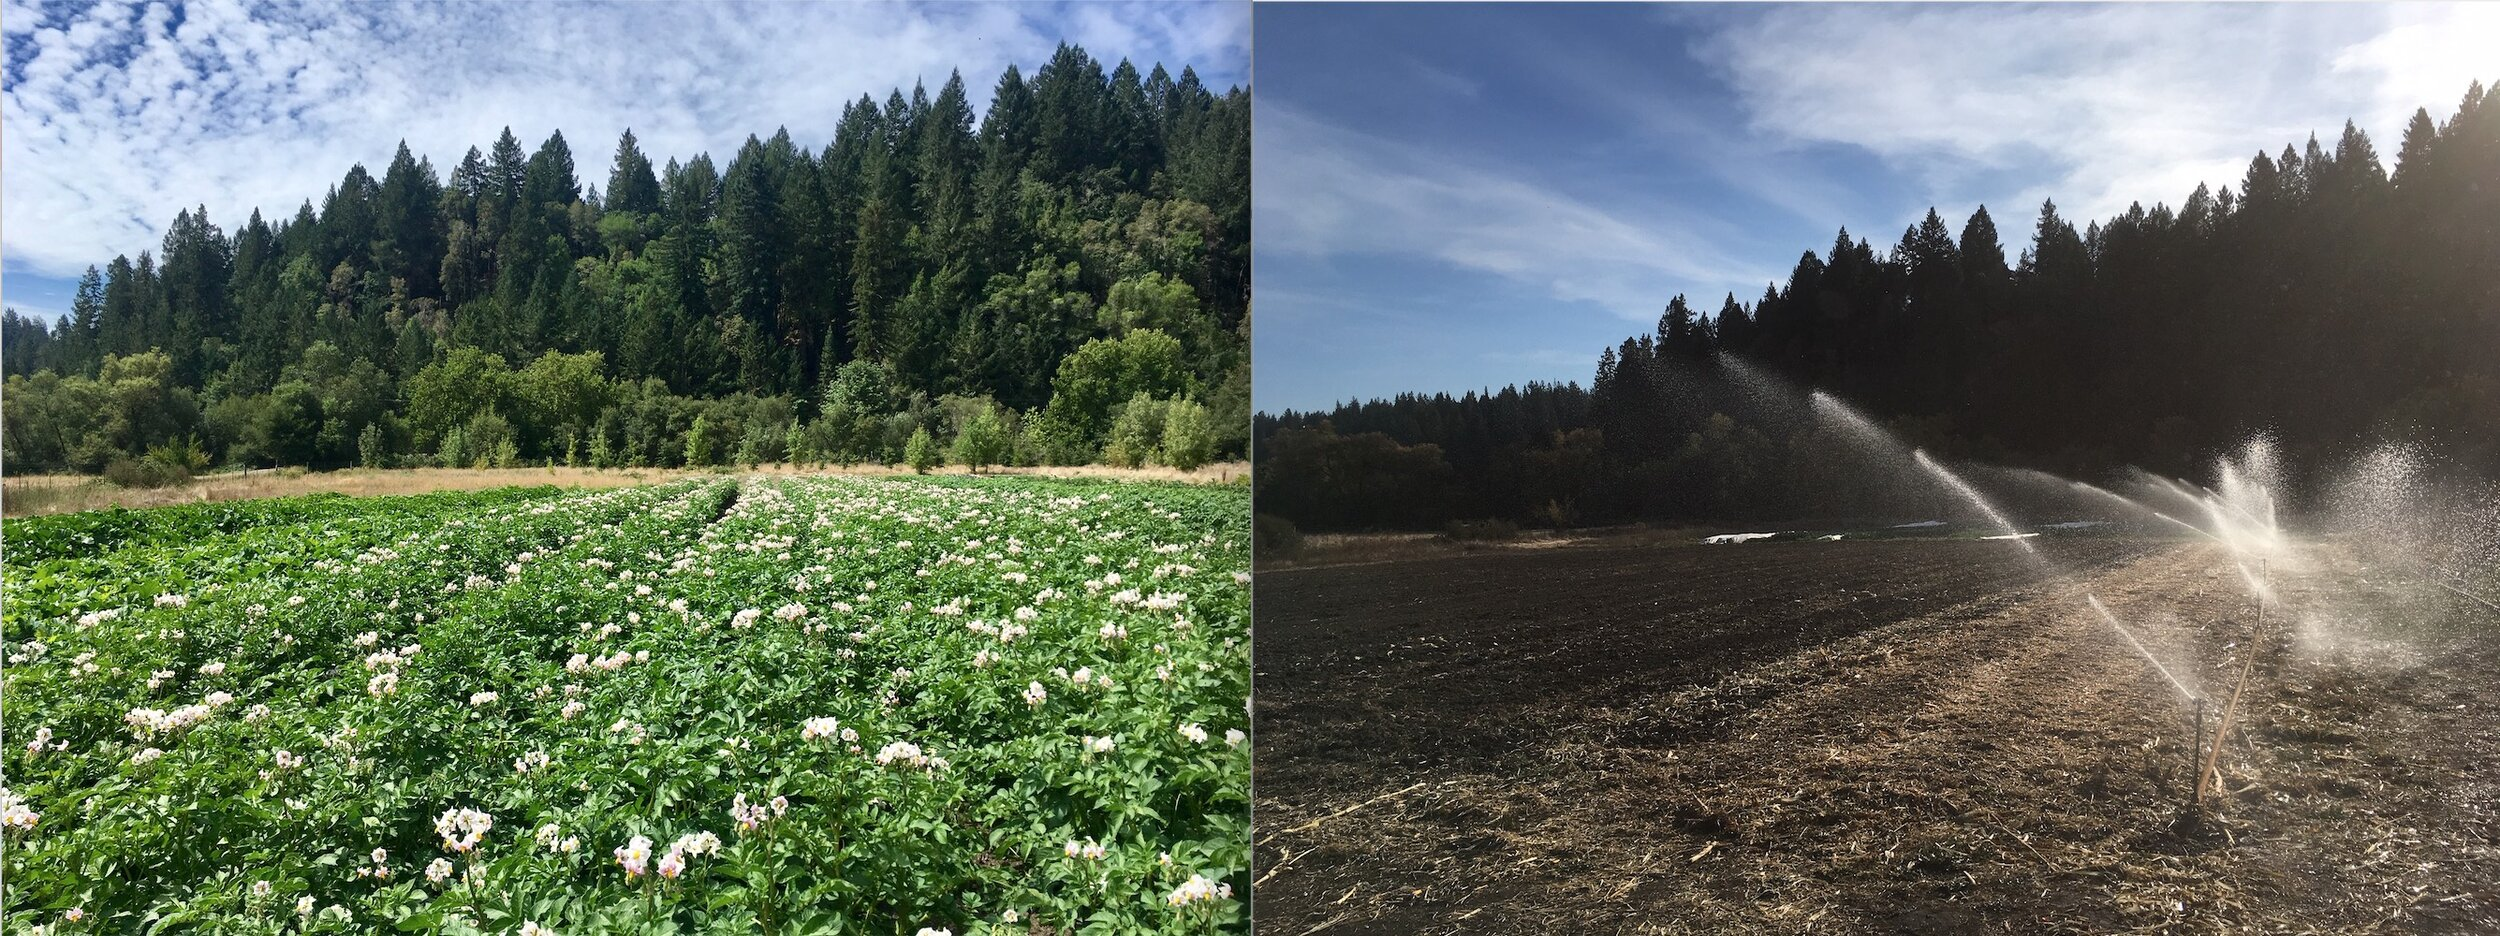 What a difference three months makes. At left, field three in full potato flower on August 8th. At right, the same field on November 7th —irrigating up cover crop seeds with over 4 tons of potatoes, corn and squash harvested.